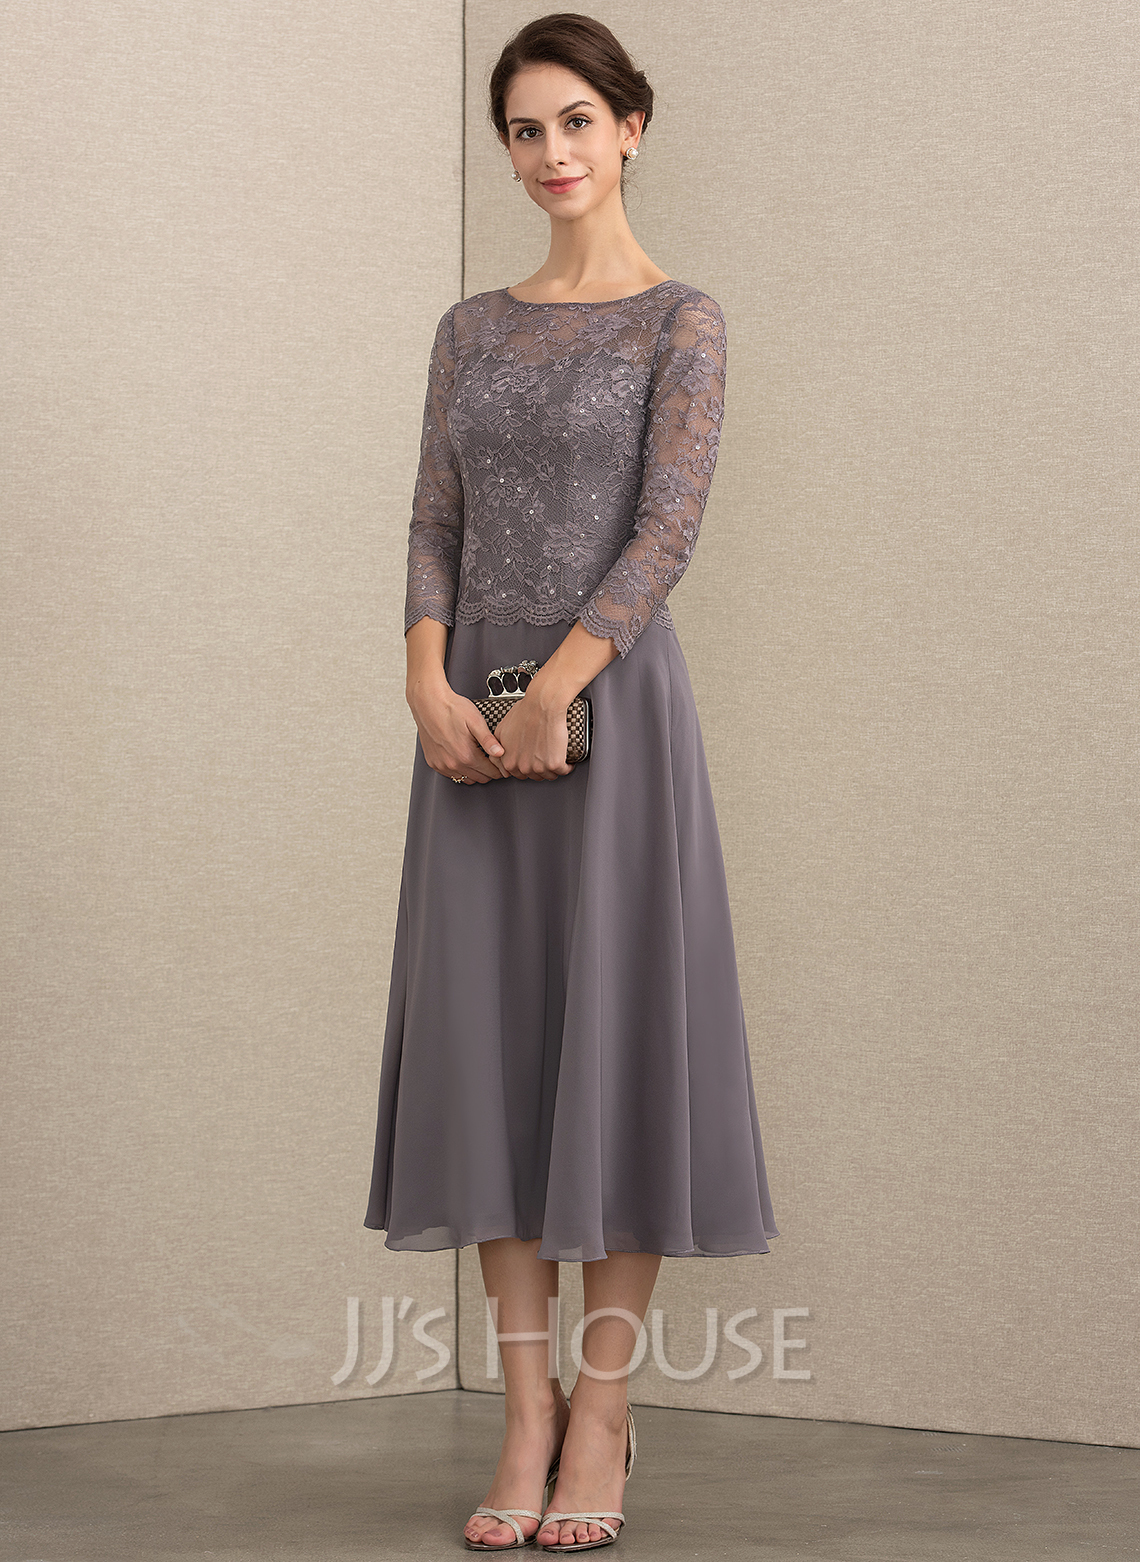 246d1667f47 A-Line Scoop Neck Tea-Length Chiffon Lace Mother of the Bride Dress With.  Loading zoom